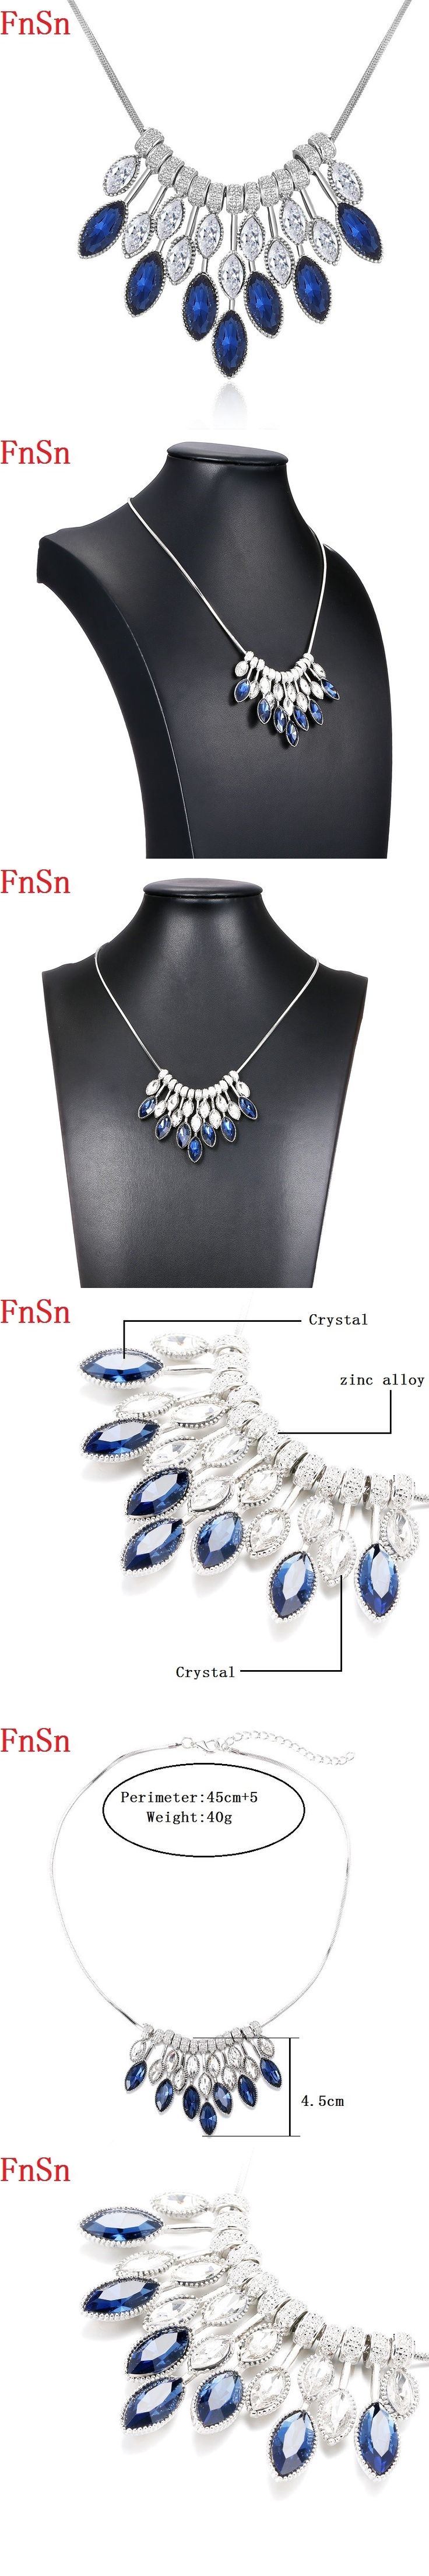 FnSn New Hot Chokers Crystal Statement Necklace Jewelry Women Collar Gift Silver High Quality Turkish jewelry Parure Sale N148